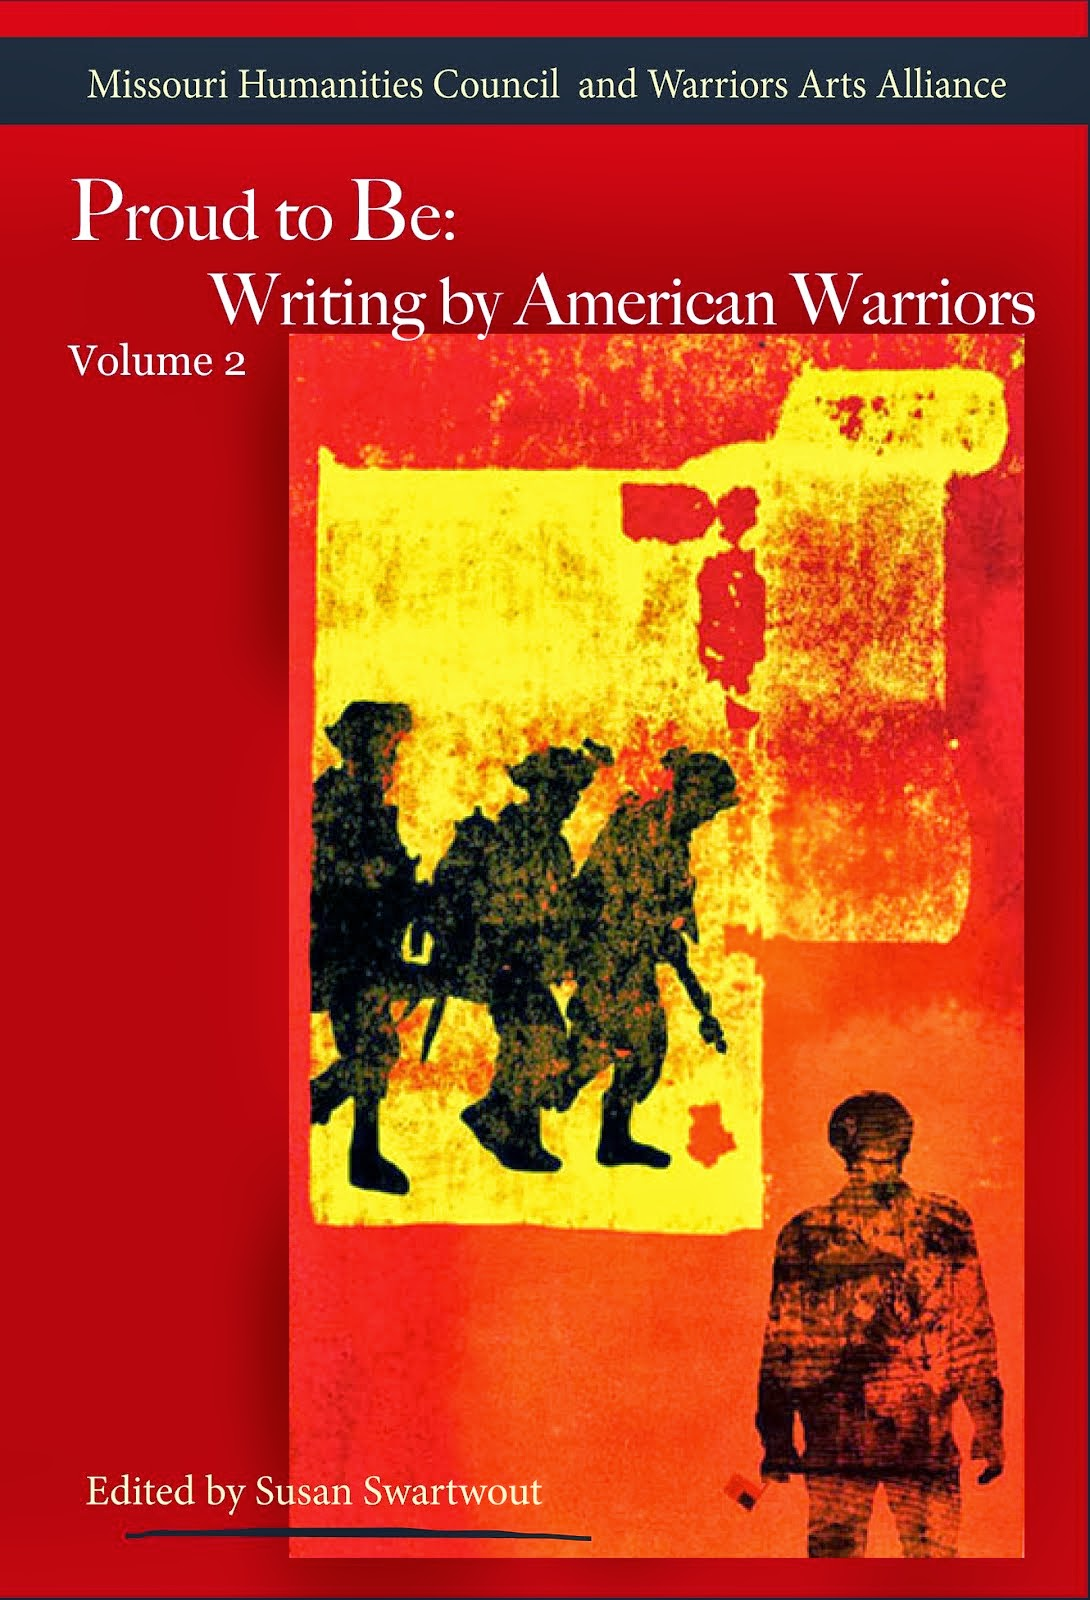 Proud to Be: Writing by American Warriors, Vol. II